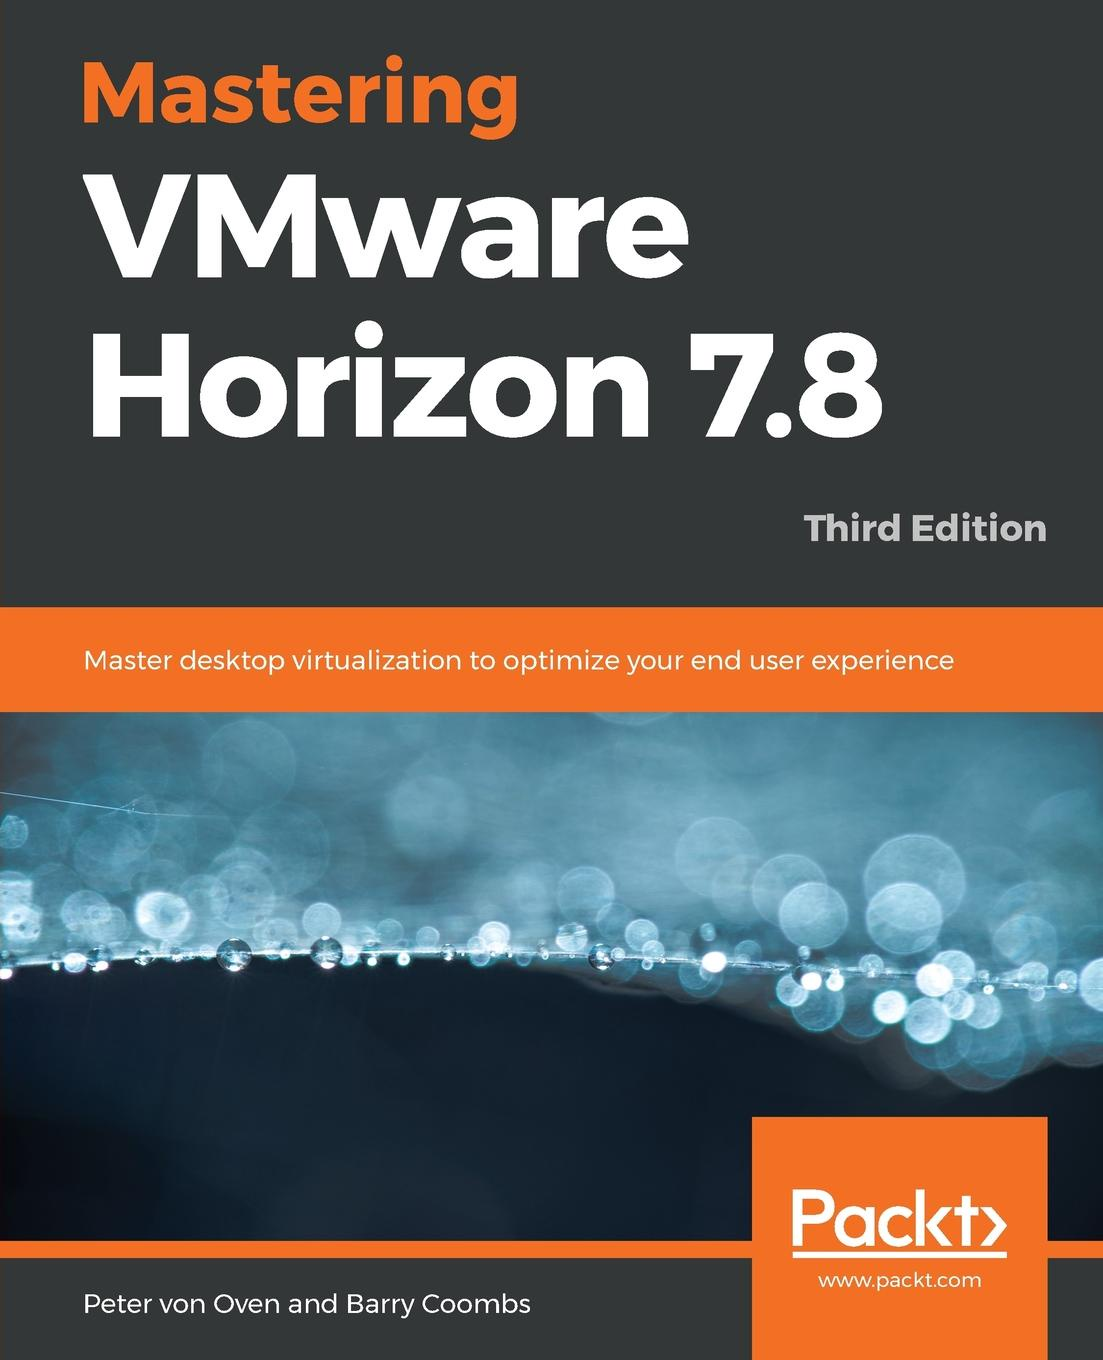 Peter von Oven, Barry Coombs Mastering VMware Horizon 7.8 - Third Edition jason ventresco implementing vmware horizon 7